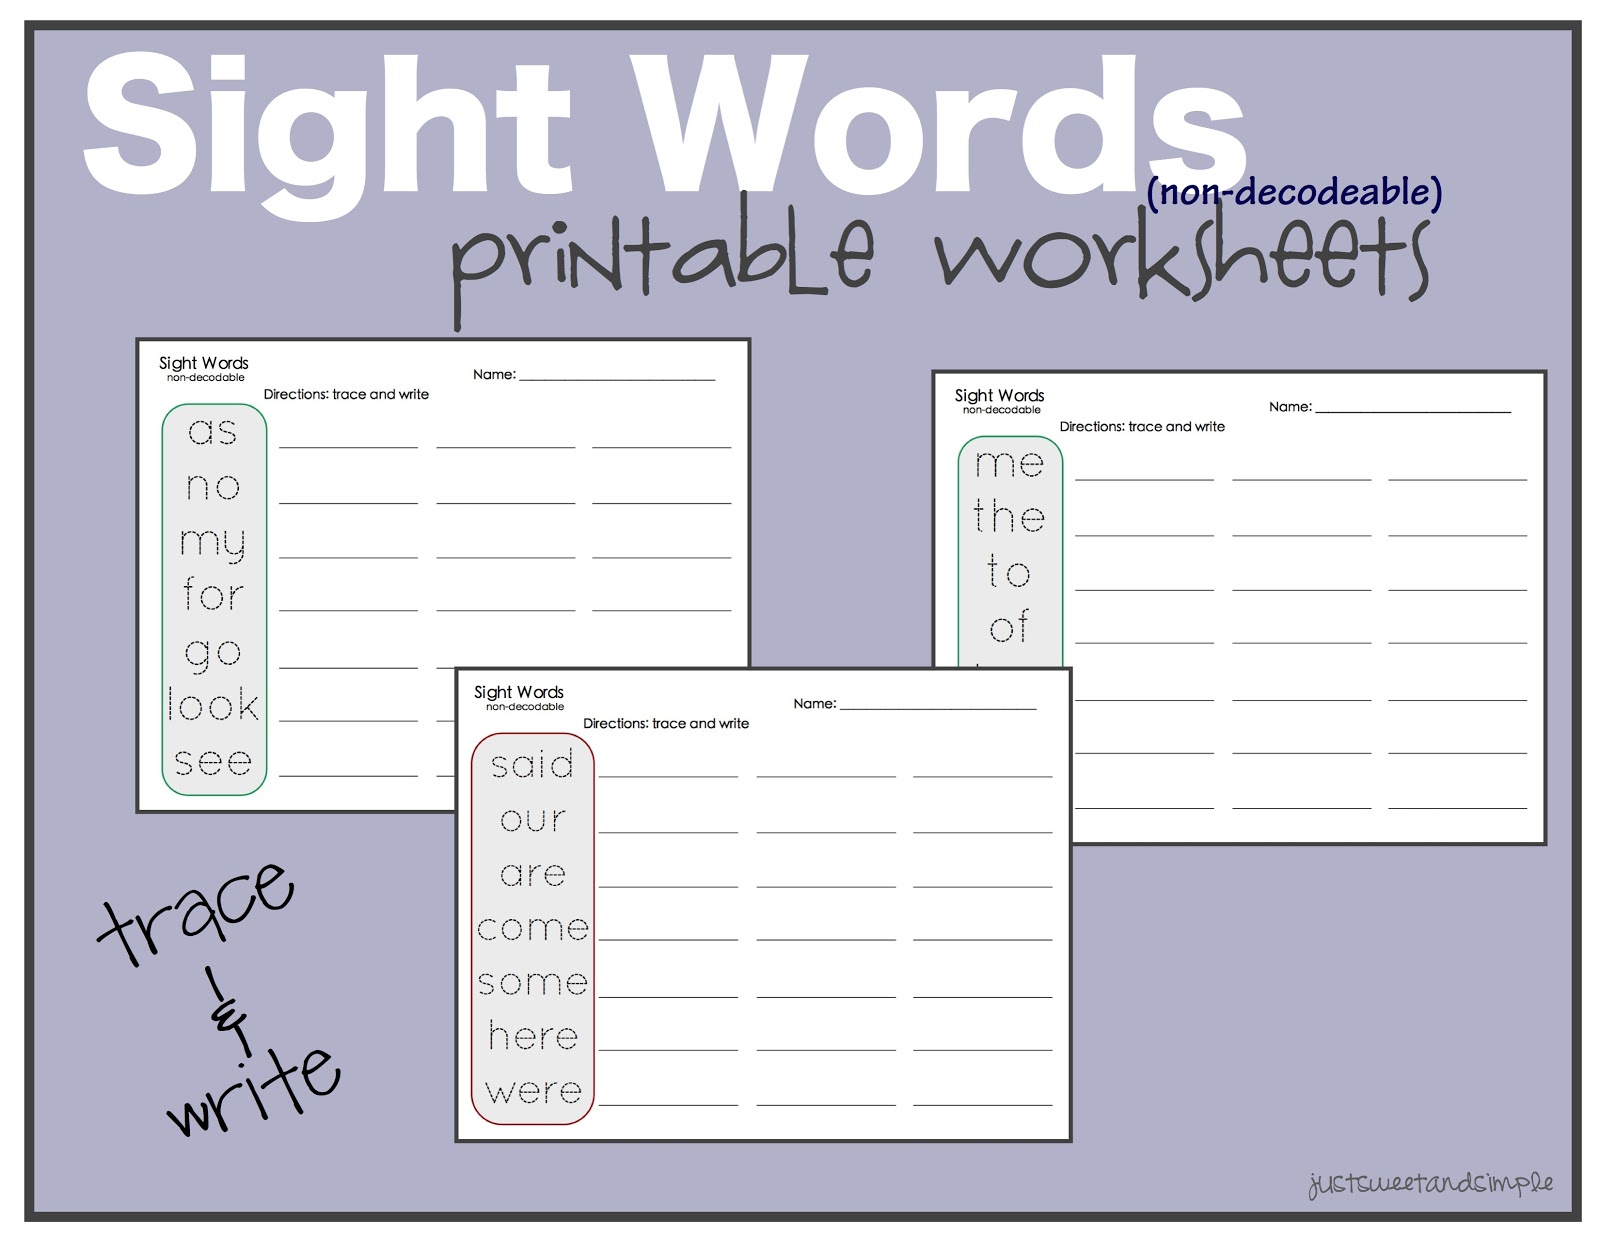 Sight Word Sentences Worksheets – Printable Sight Word Worksheets for Kindergarten